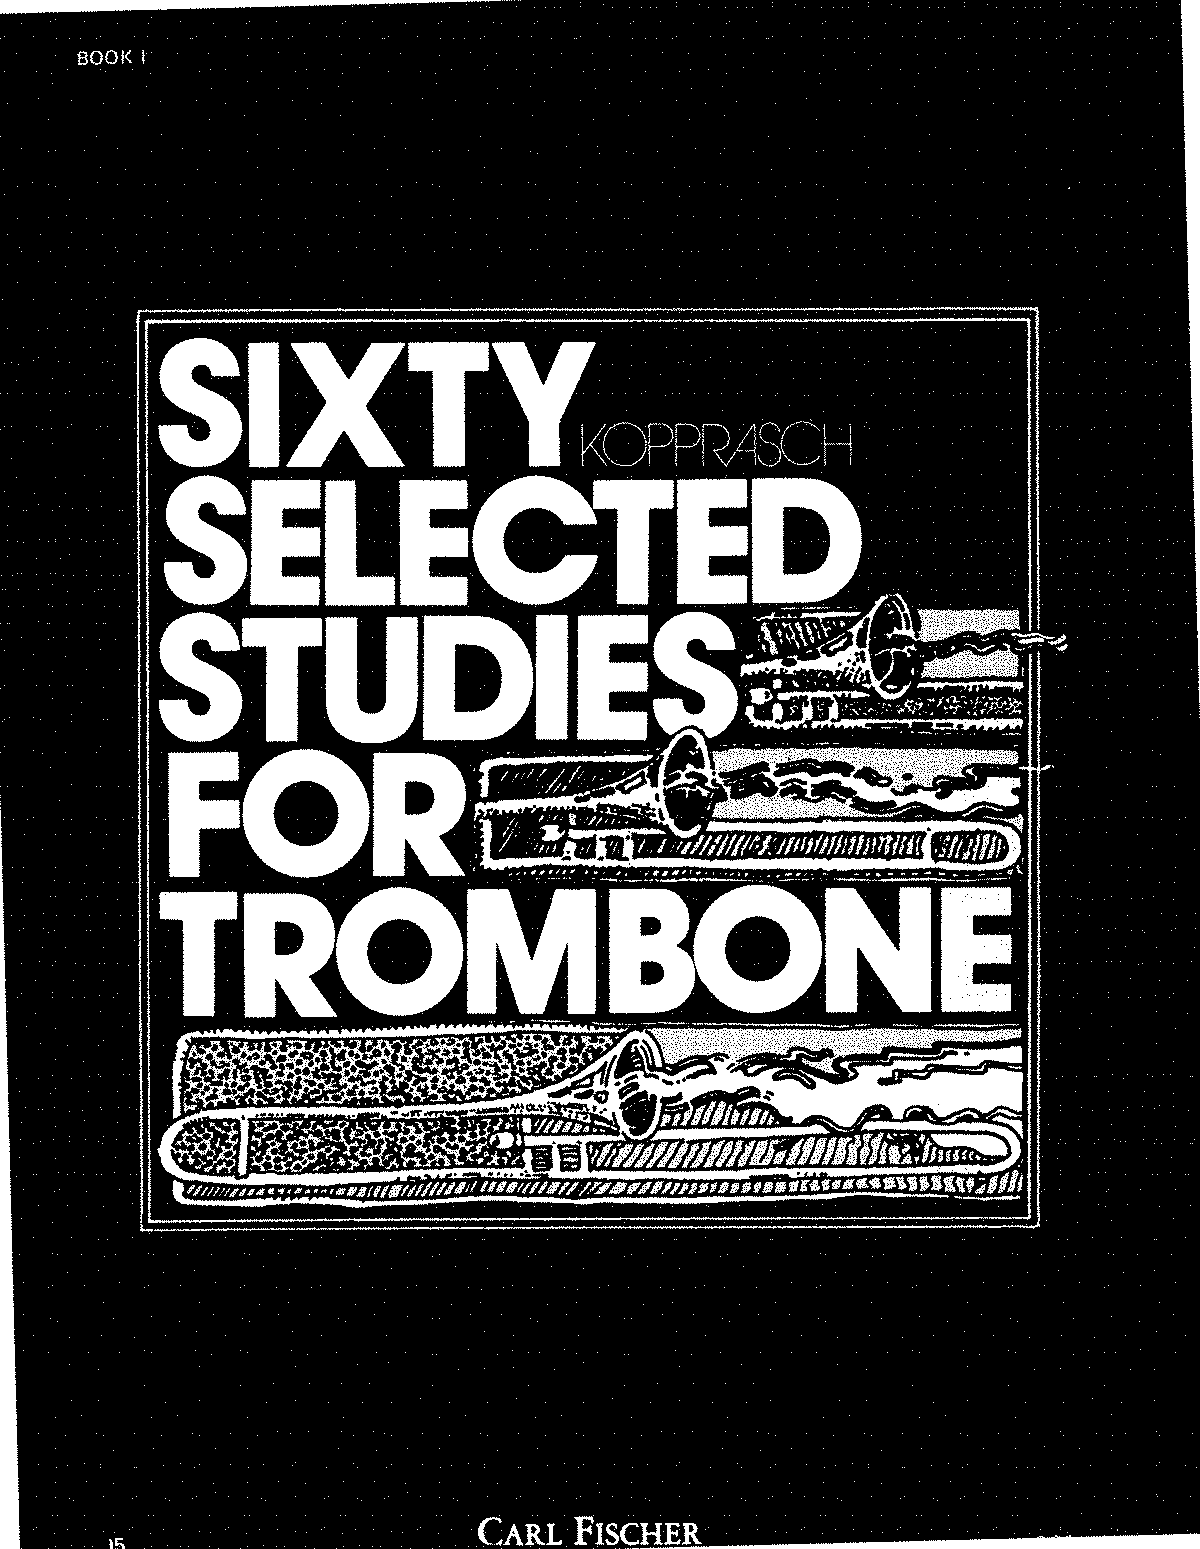 PMLP460734-Kopprasch Sixty-Selected-Studies-for-Trombone Vlm1.pdf